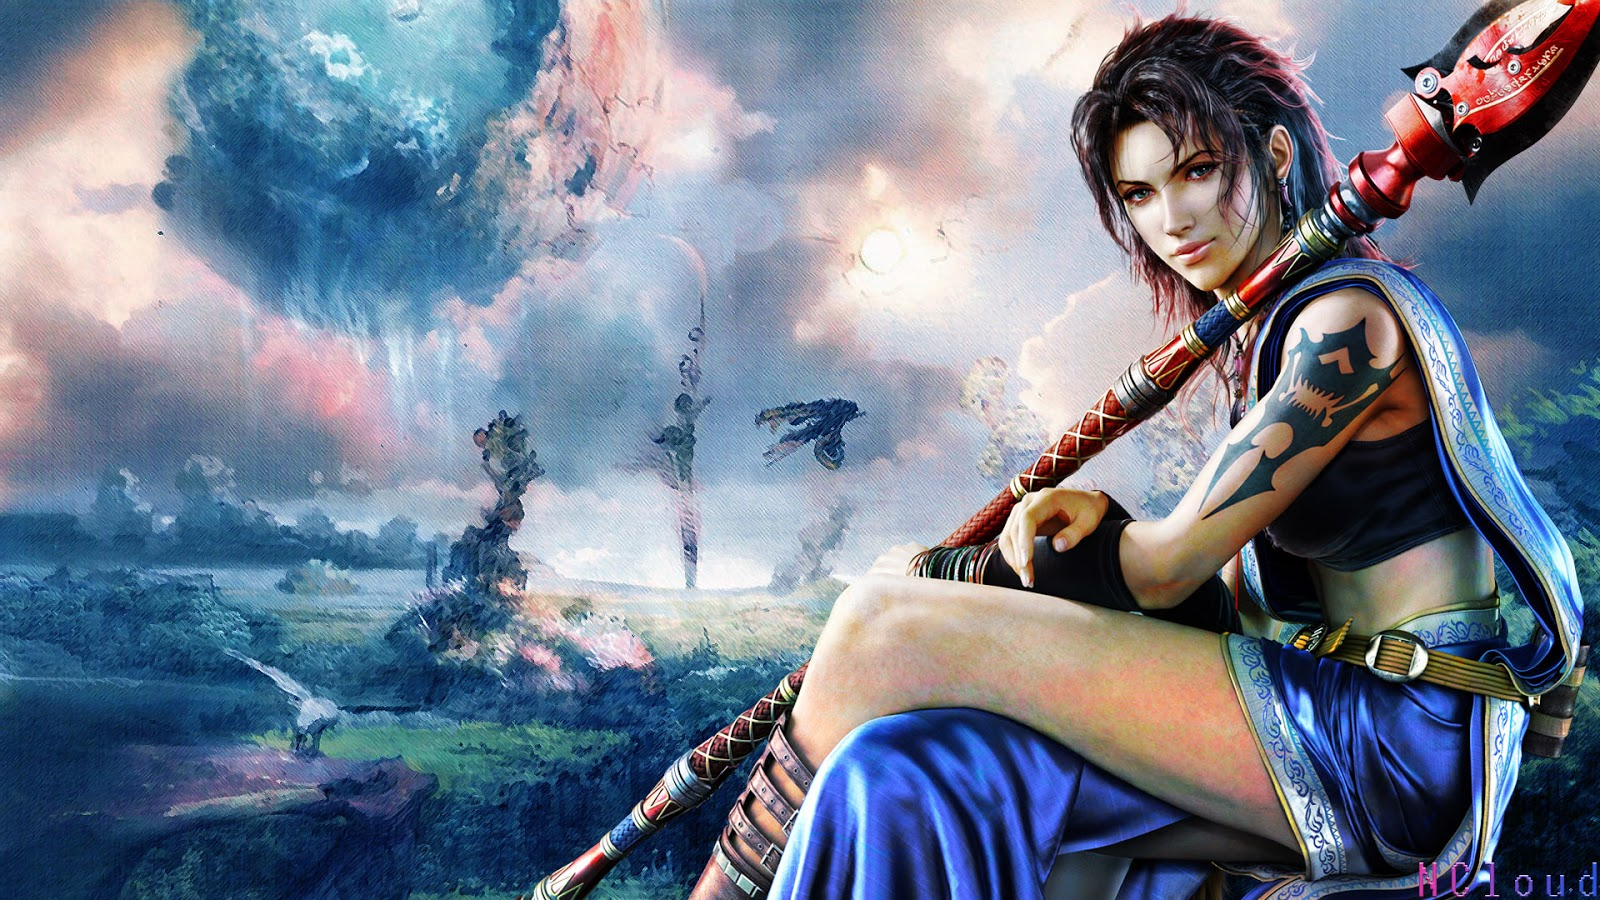 Manga And Anime Wallpapers: Final Fantasy Cool HD Wallpaper